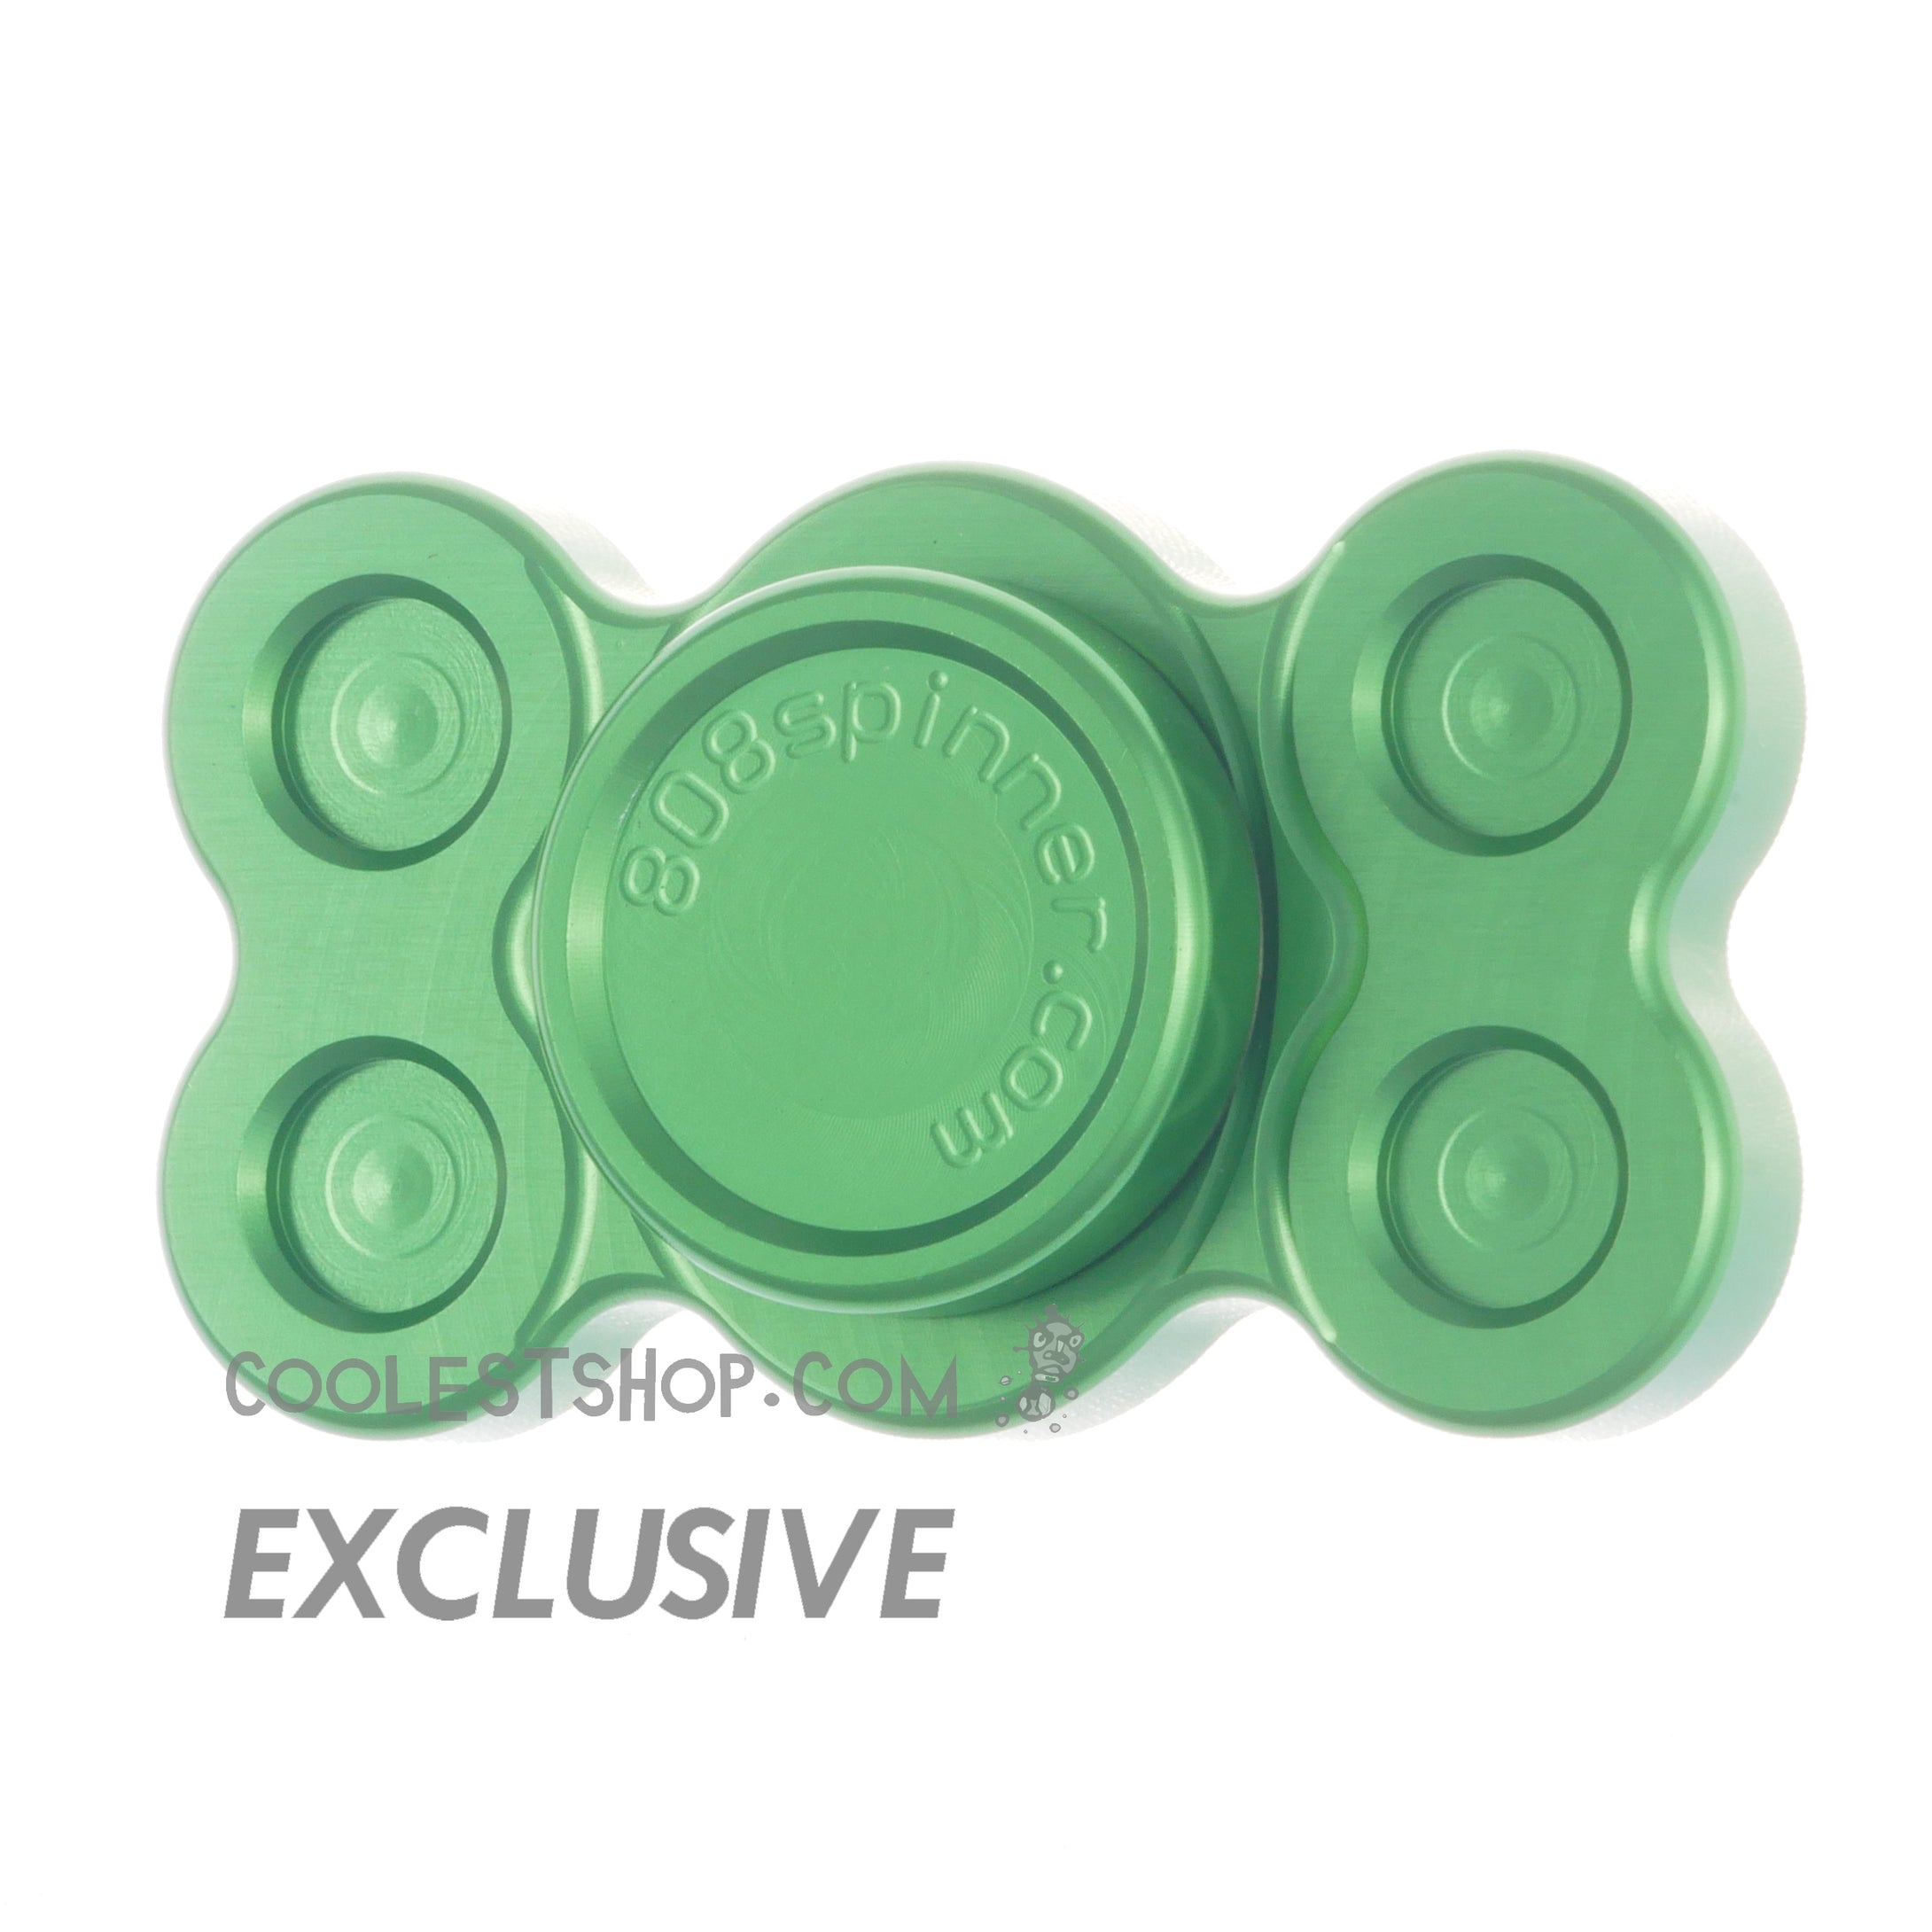 808 Spinner • GEN 1 • by WooSah! USA • Full Aluminum • Anodized GREEN • 608 bearing version • coolestshop.com exclusive IN STOCK NOW!!!